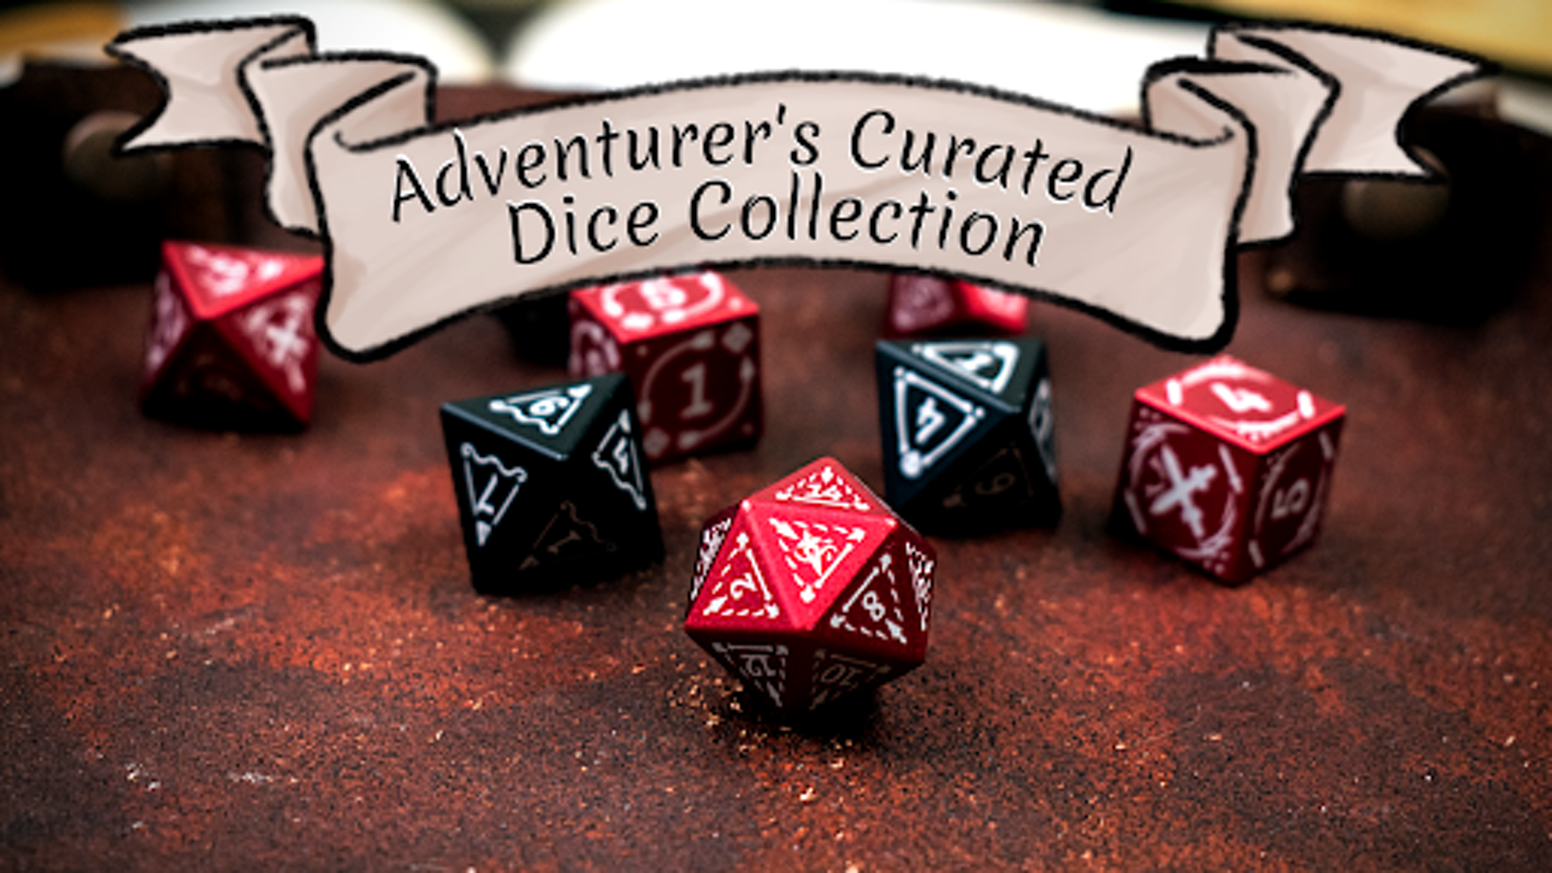 Adventurer s Curated Dice Collection by Level Up Dice